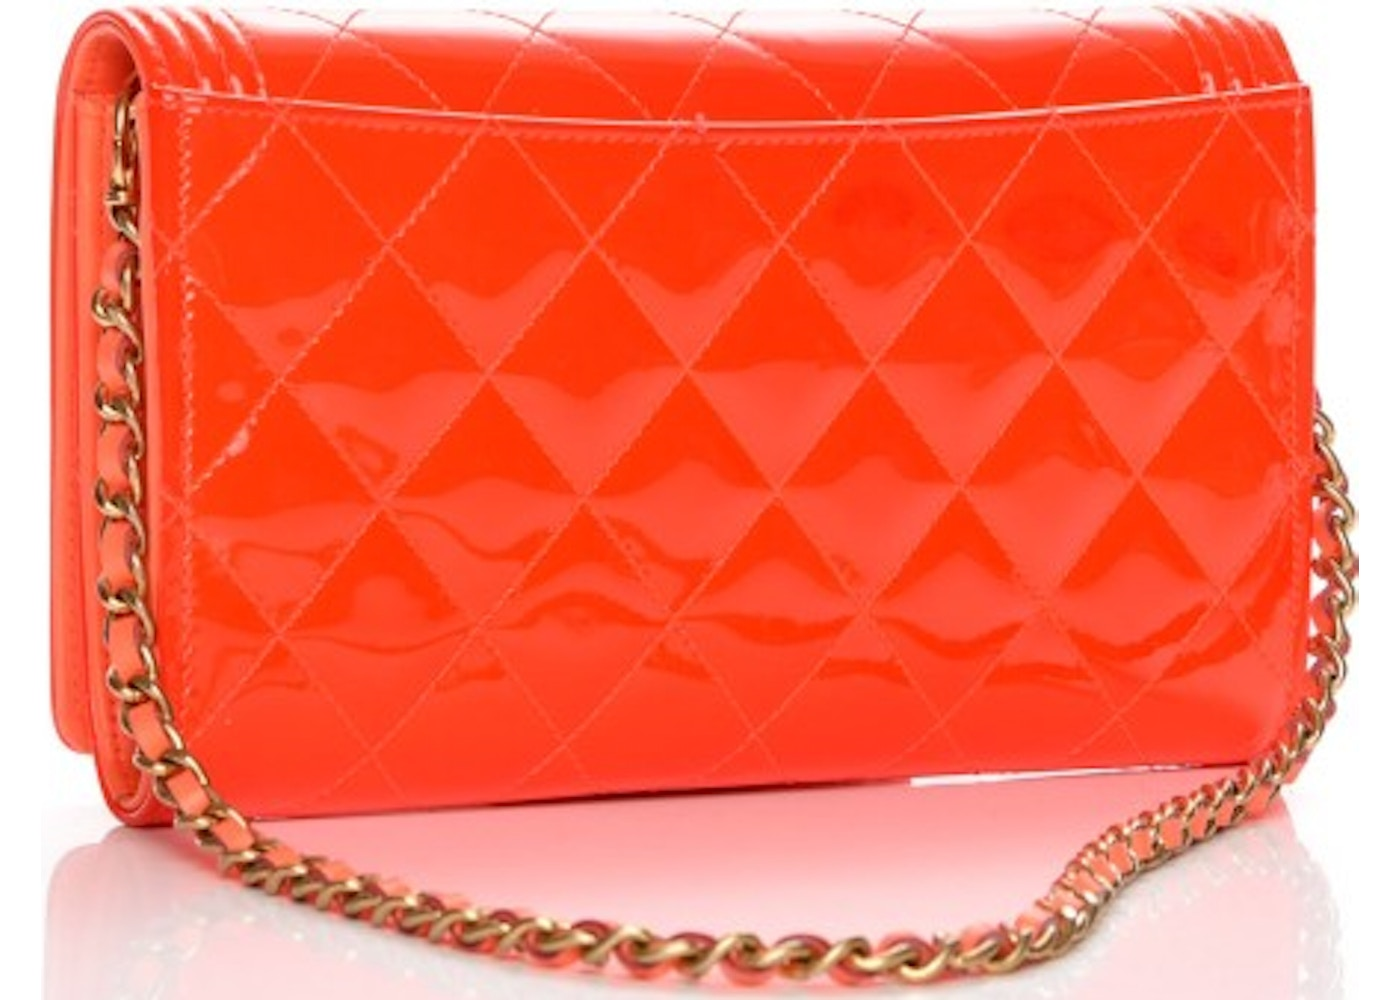 dc774c6b7cea Chanel Boy Wallet on Removable Chain Quilted Diamond Patent Leather/Calfskin  Orange